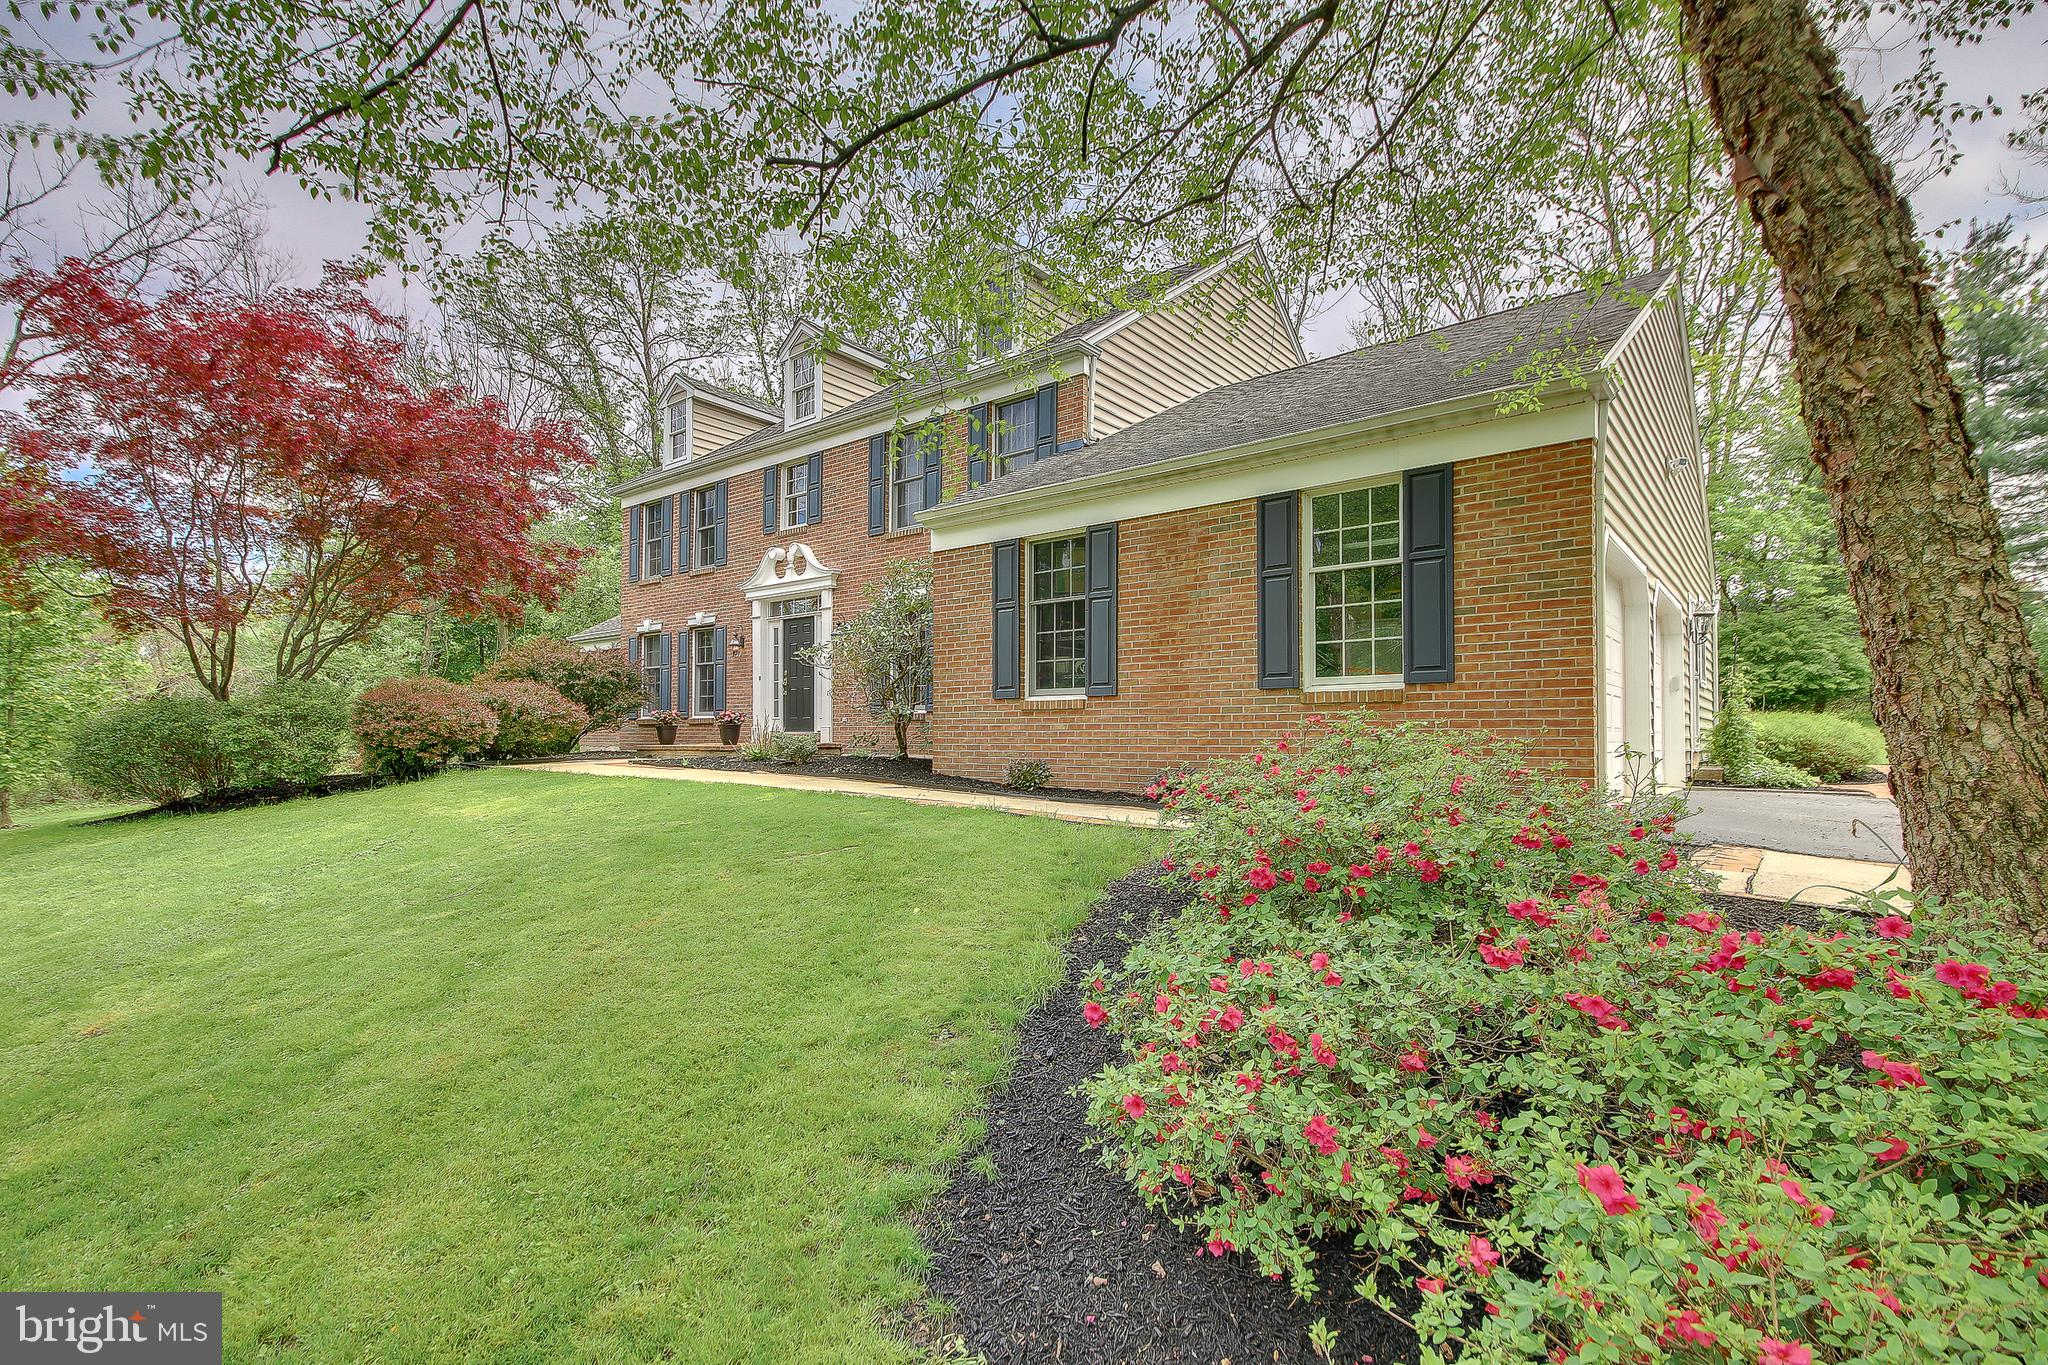 2495 MEETINGHOUSE ROAD, JAMISON, PA 18929